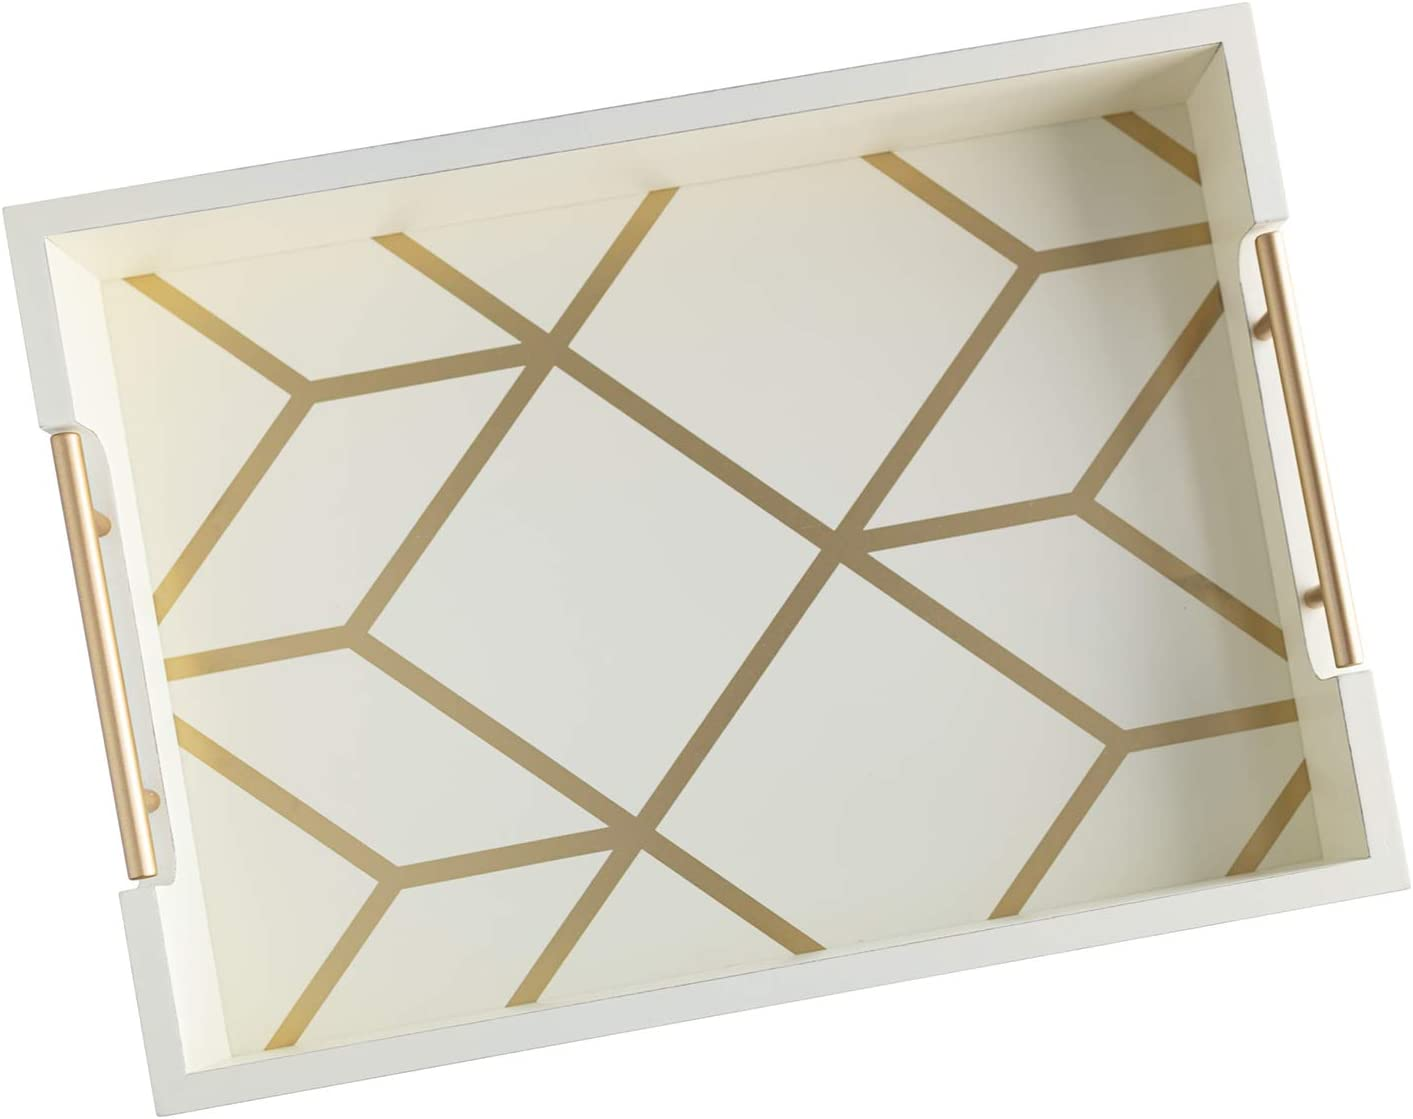 Creamy White & Gold Coffee Table Serving Tray with Handles - 16.5 x 12 - Wooden Decorative Ottoman Tray for Serving Food